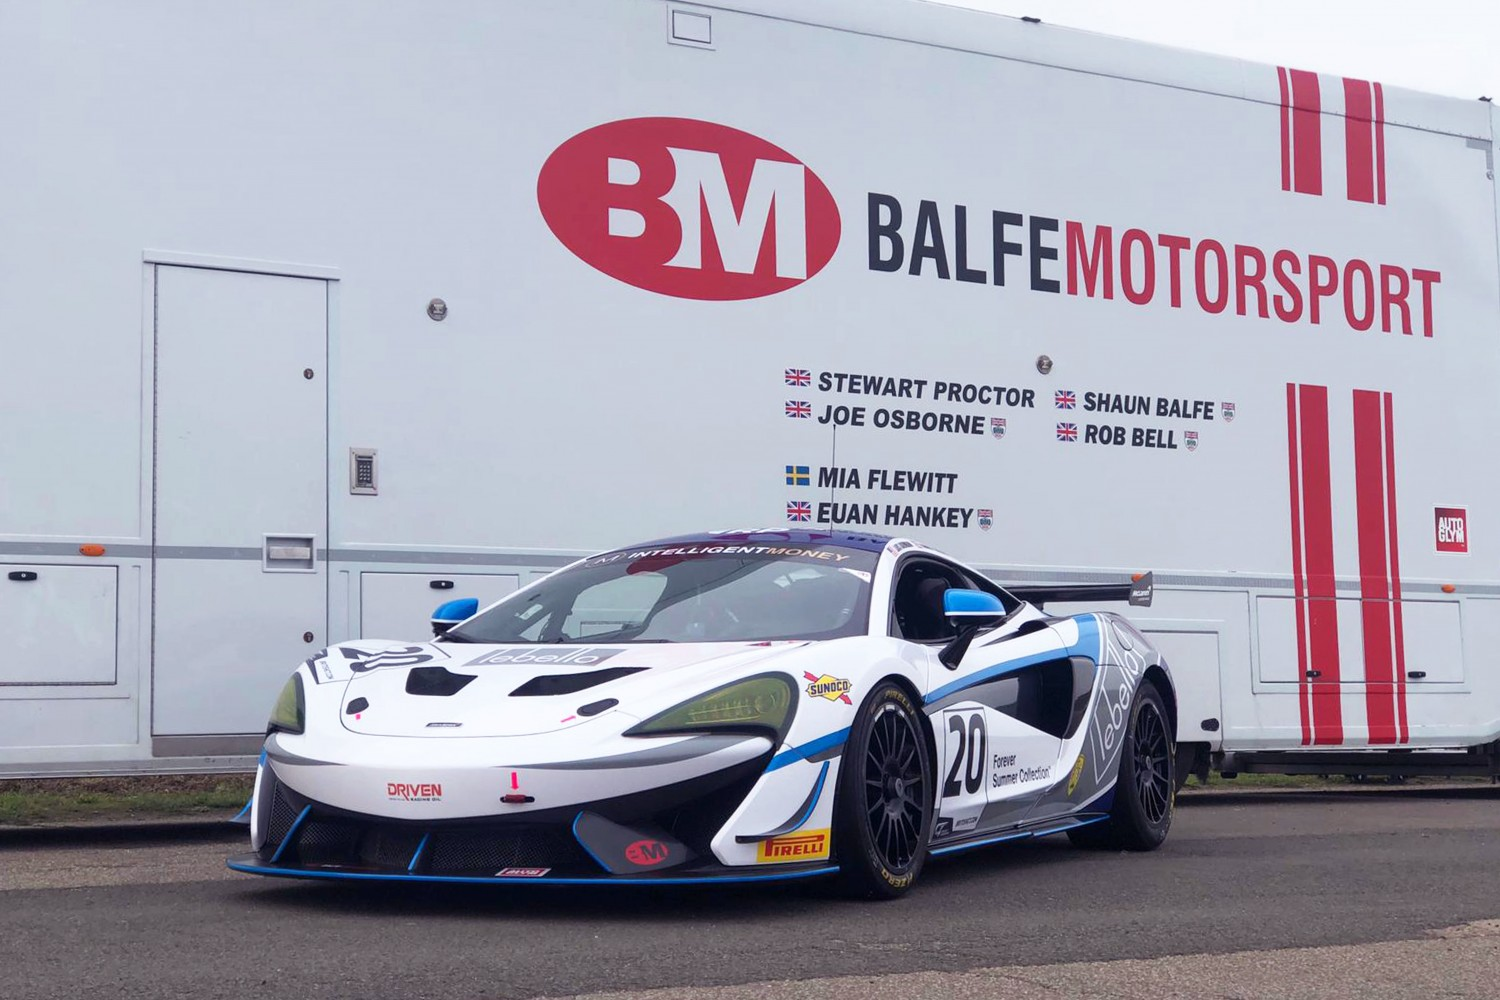 Dahmann and Hollings complete Balfe's three-strong Silverstone 500 GT4 entry